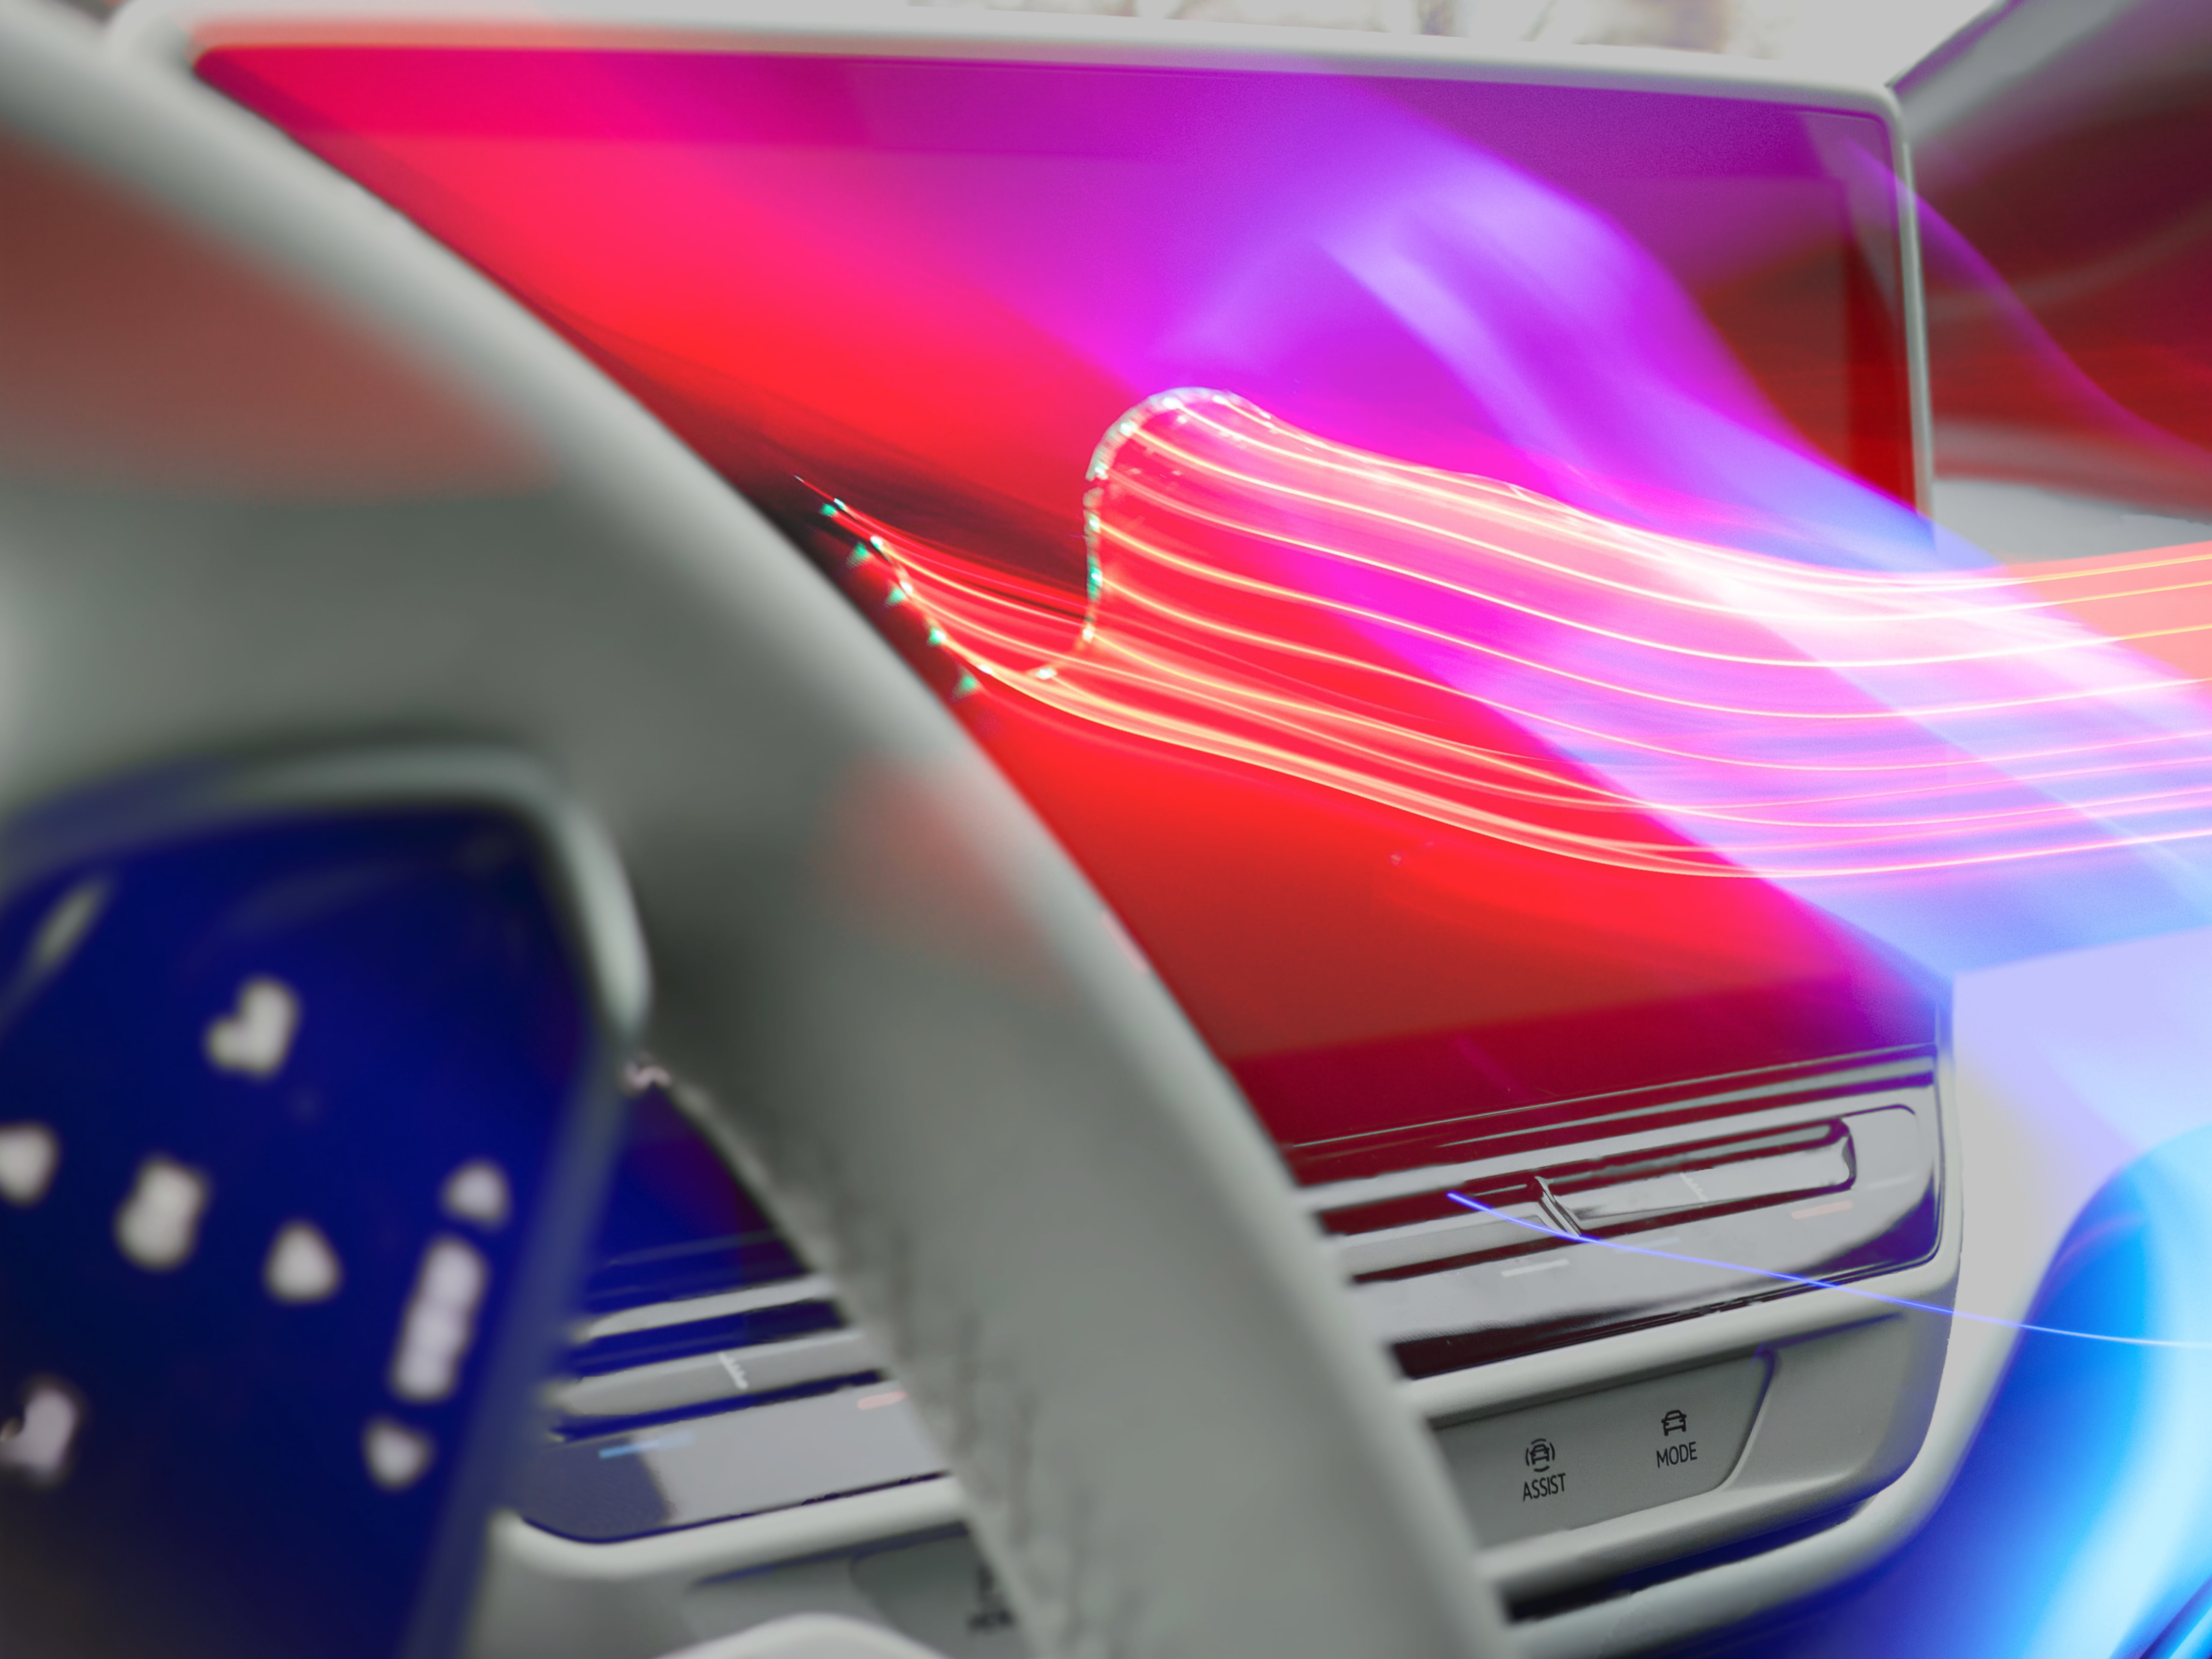 A close-up image of a white steering wheel with a blank infotainment system behind glowing with streaks of pink, red, and blue light.